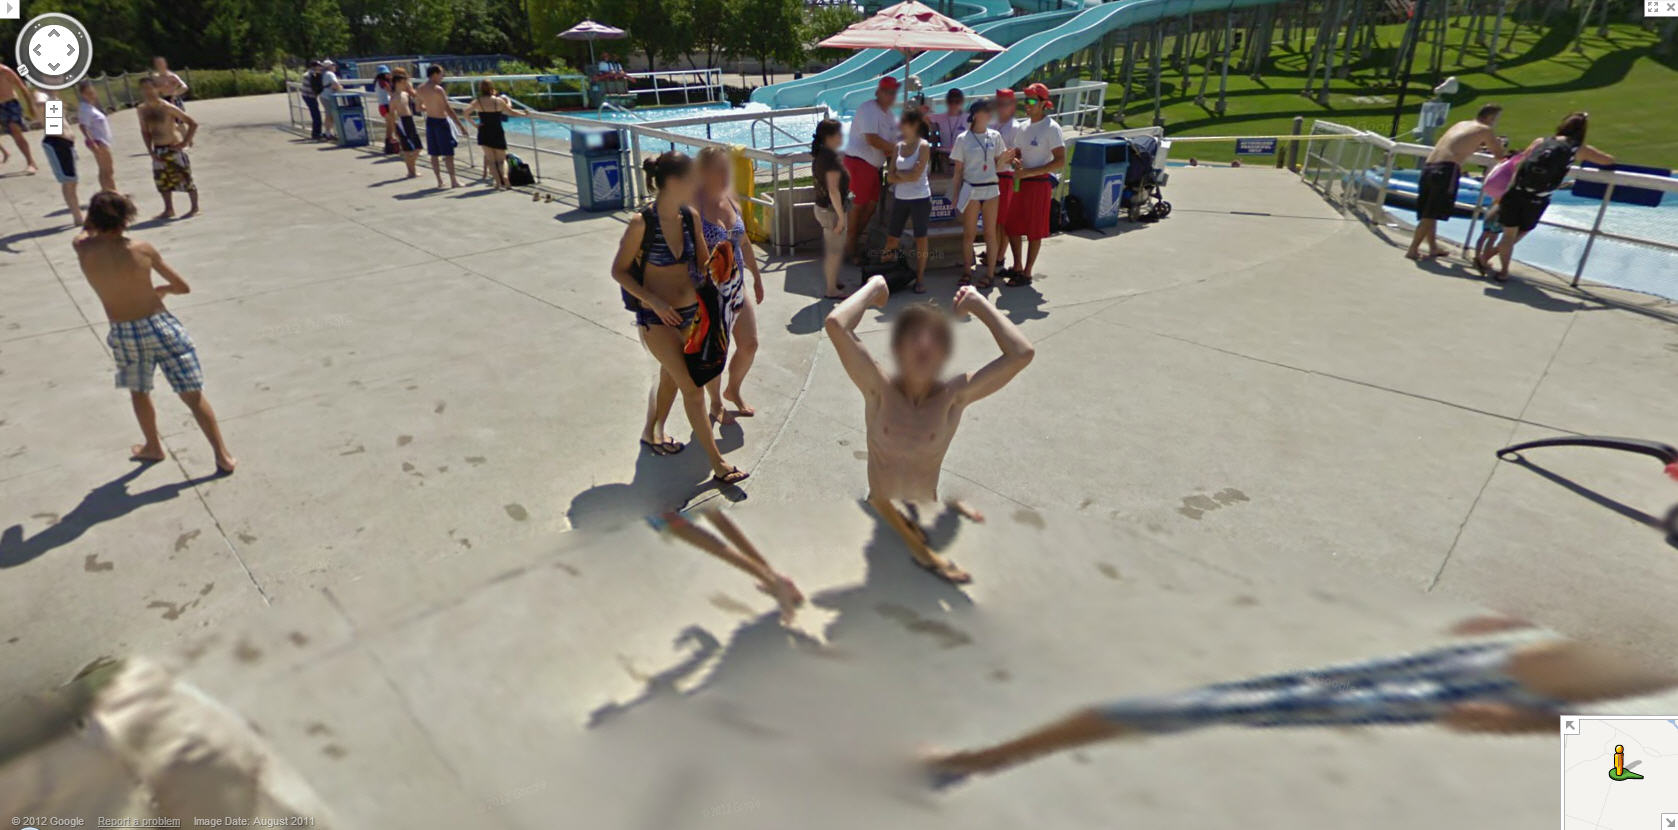 ... street view funny from Rio – another corpse via Google Street View